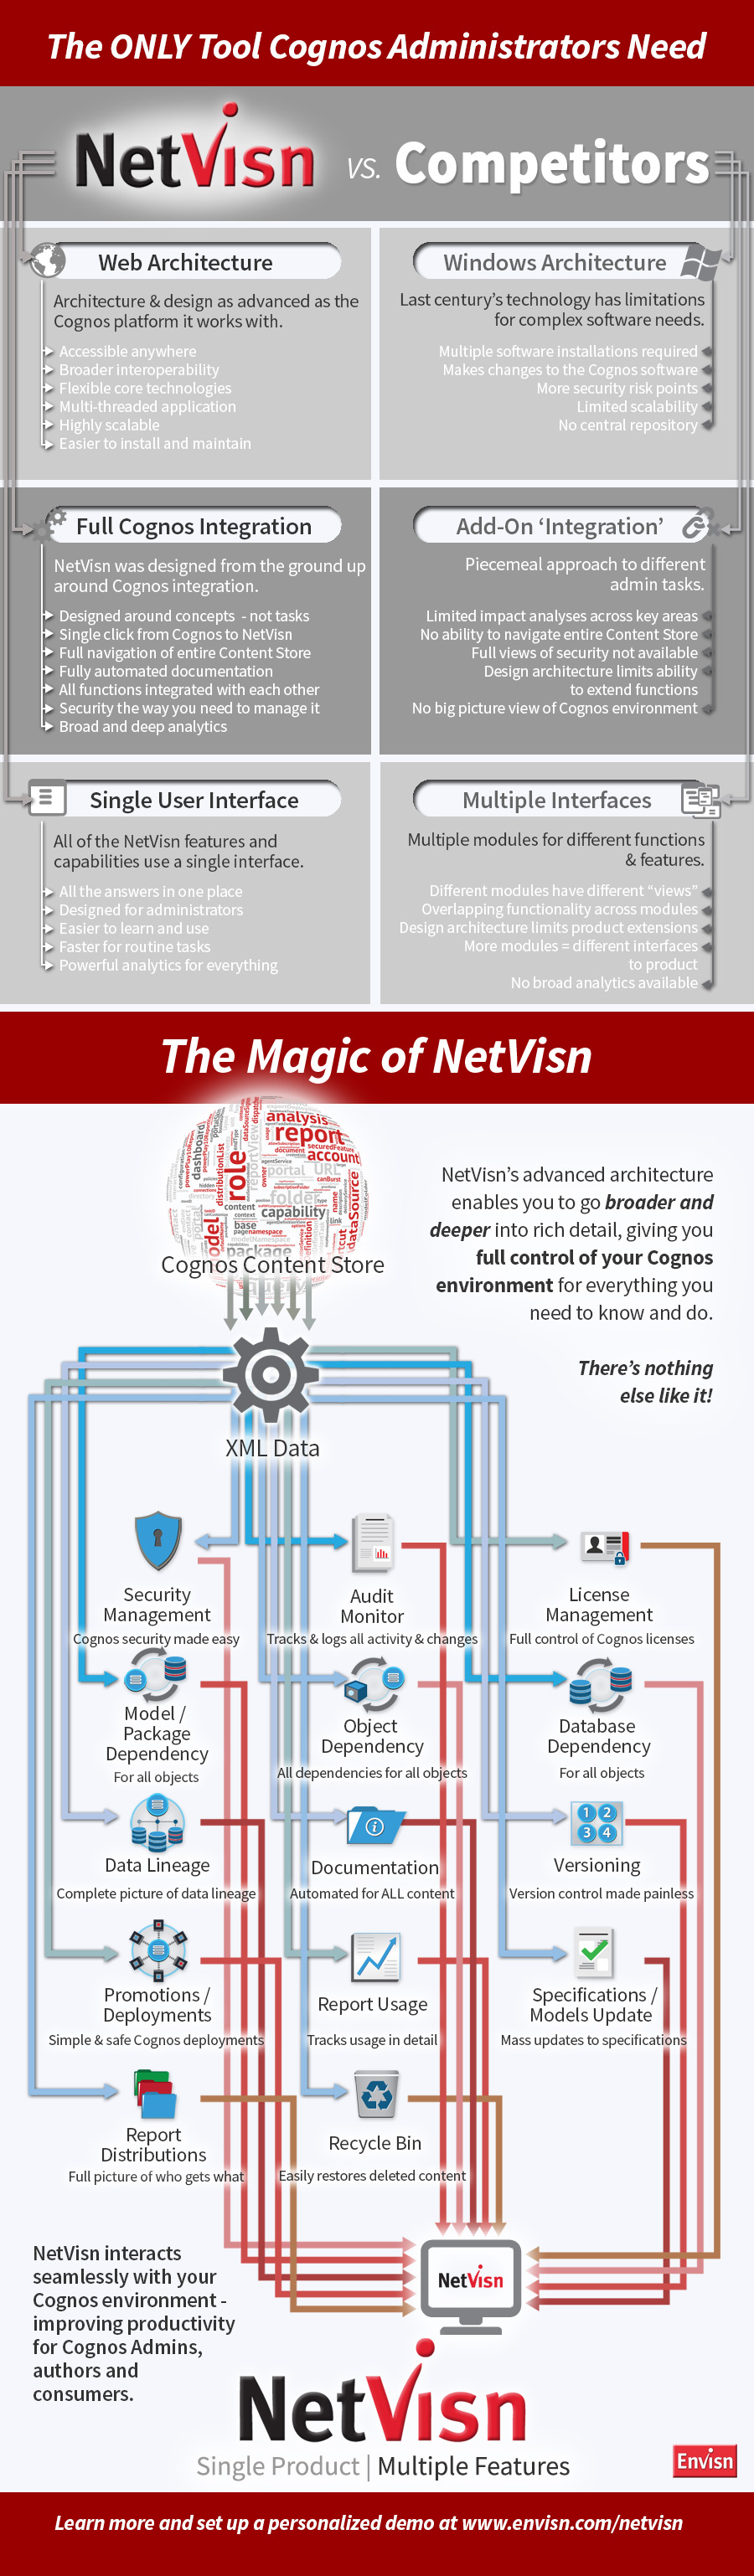 Compare Netvisn, the only tool cognos administartors need